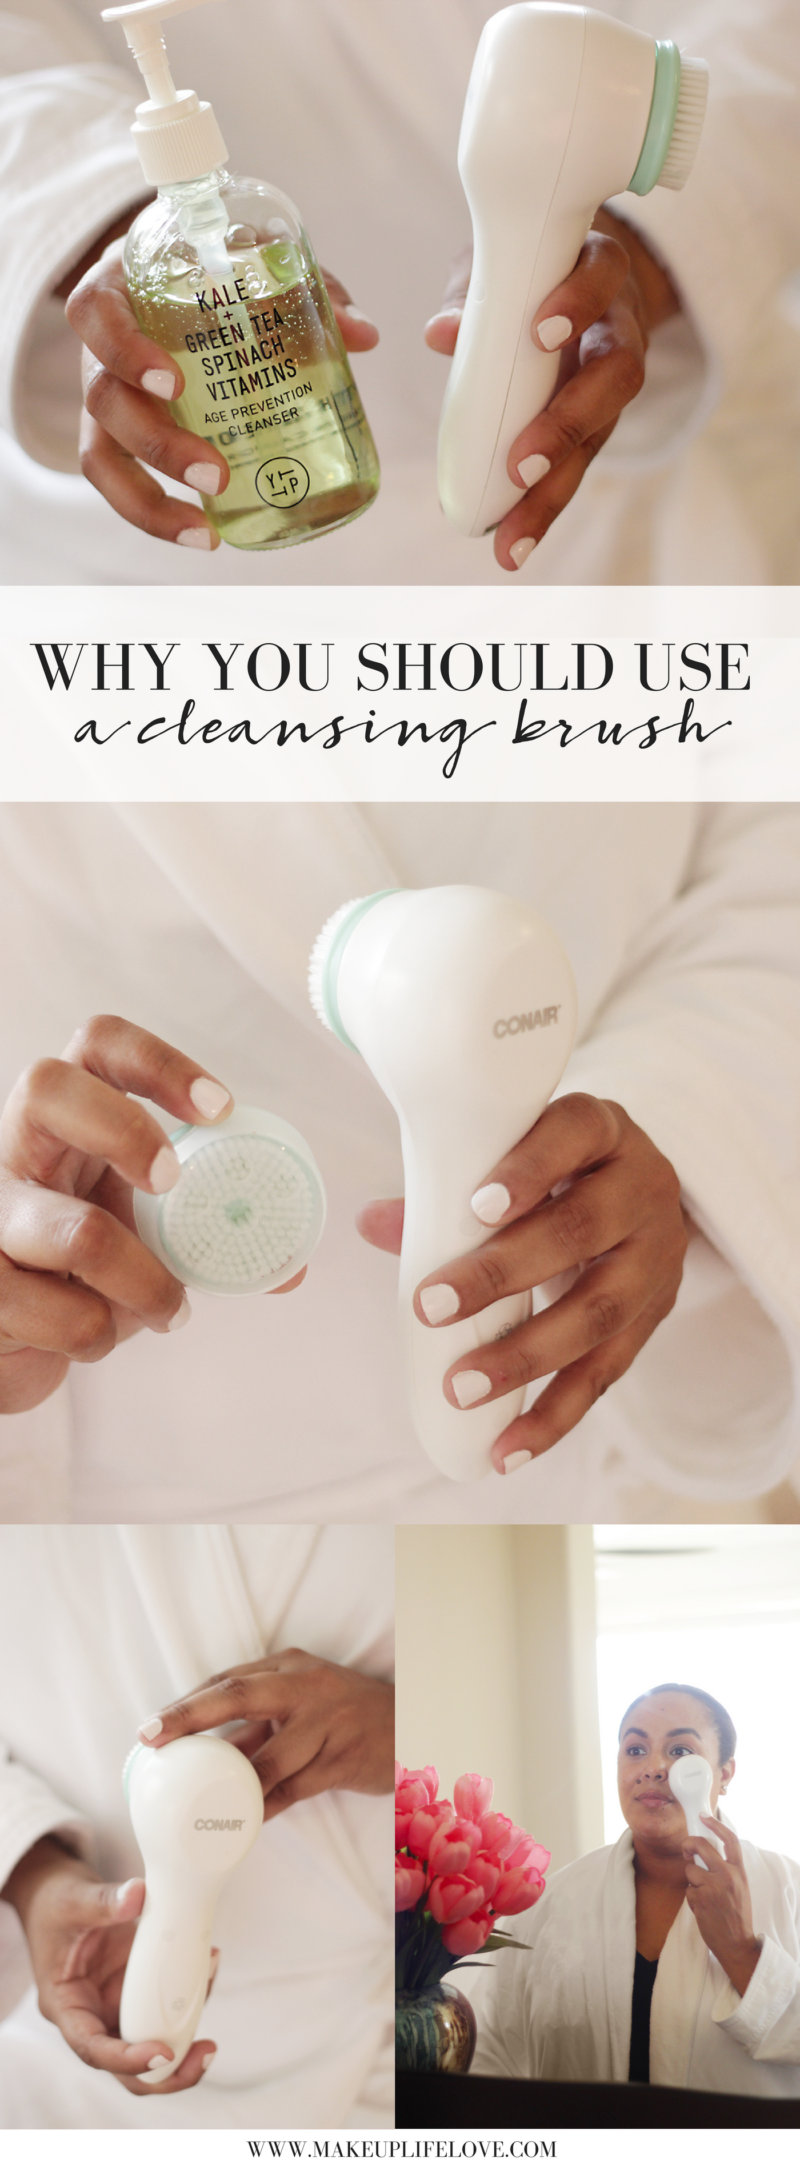 Need a reason to try a cleansing brush? Keep reading and see why this cleansing brush is the BEST one with the perfect price point as well.